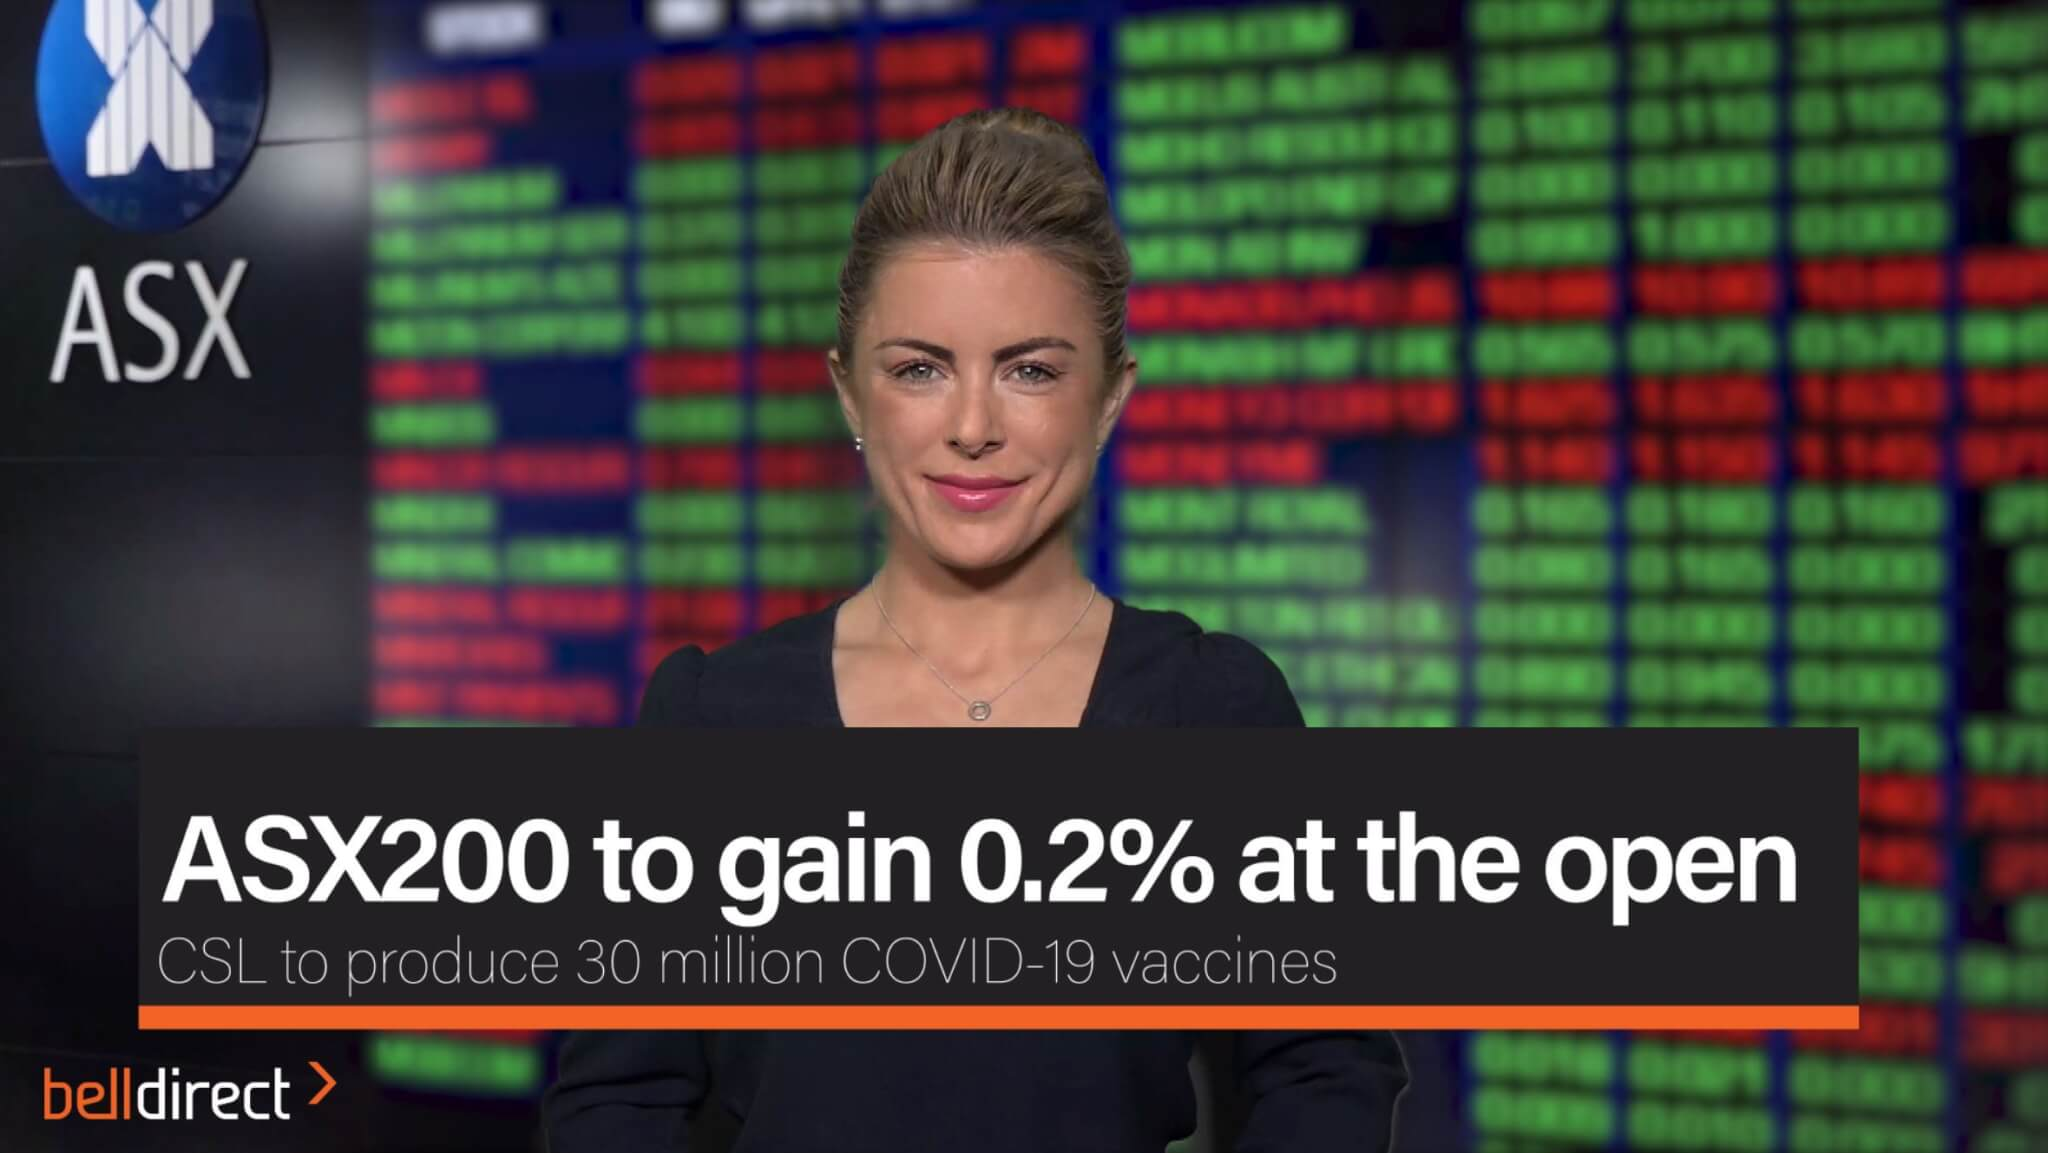 ASX200 to gain 0.2% at the open